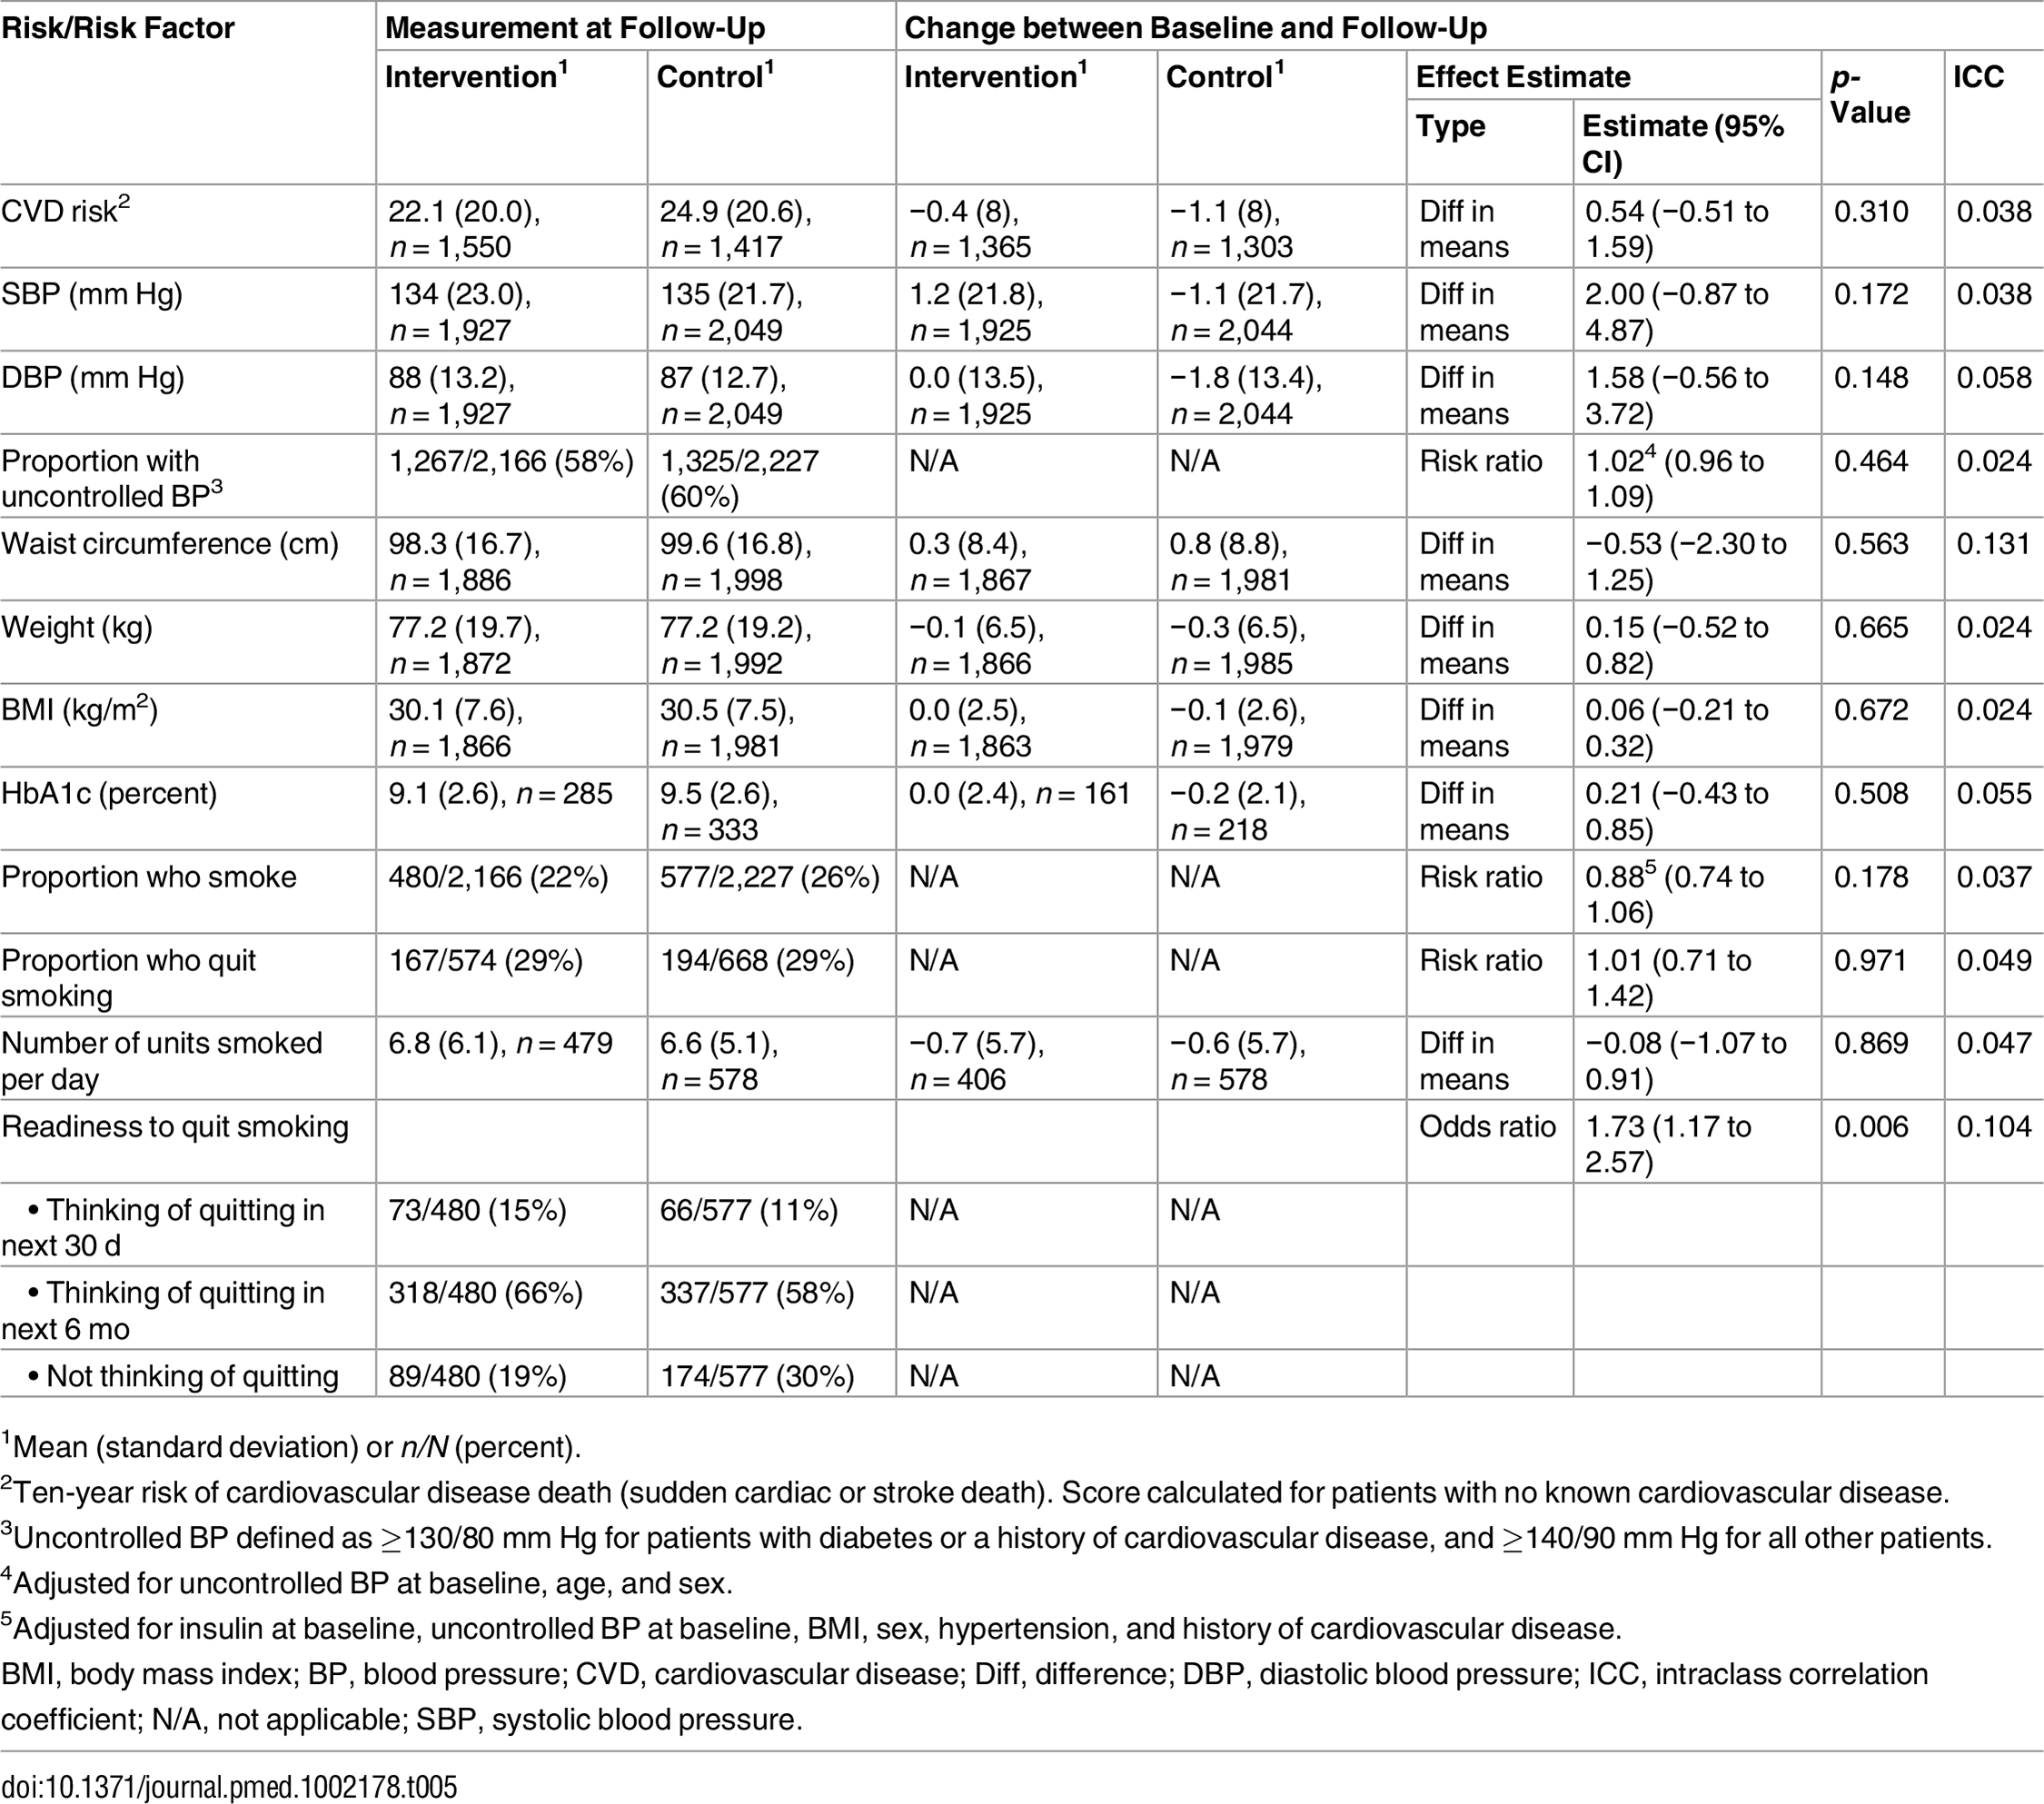 Effect on cardiovascular disease risk and risk factors; all four cohorts pooled.